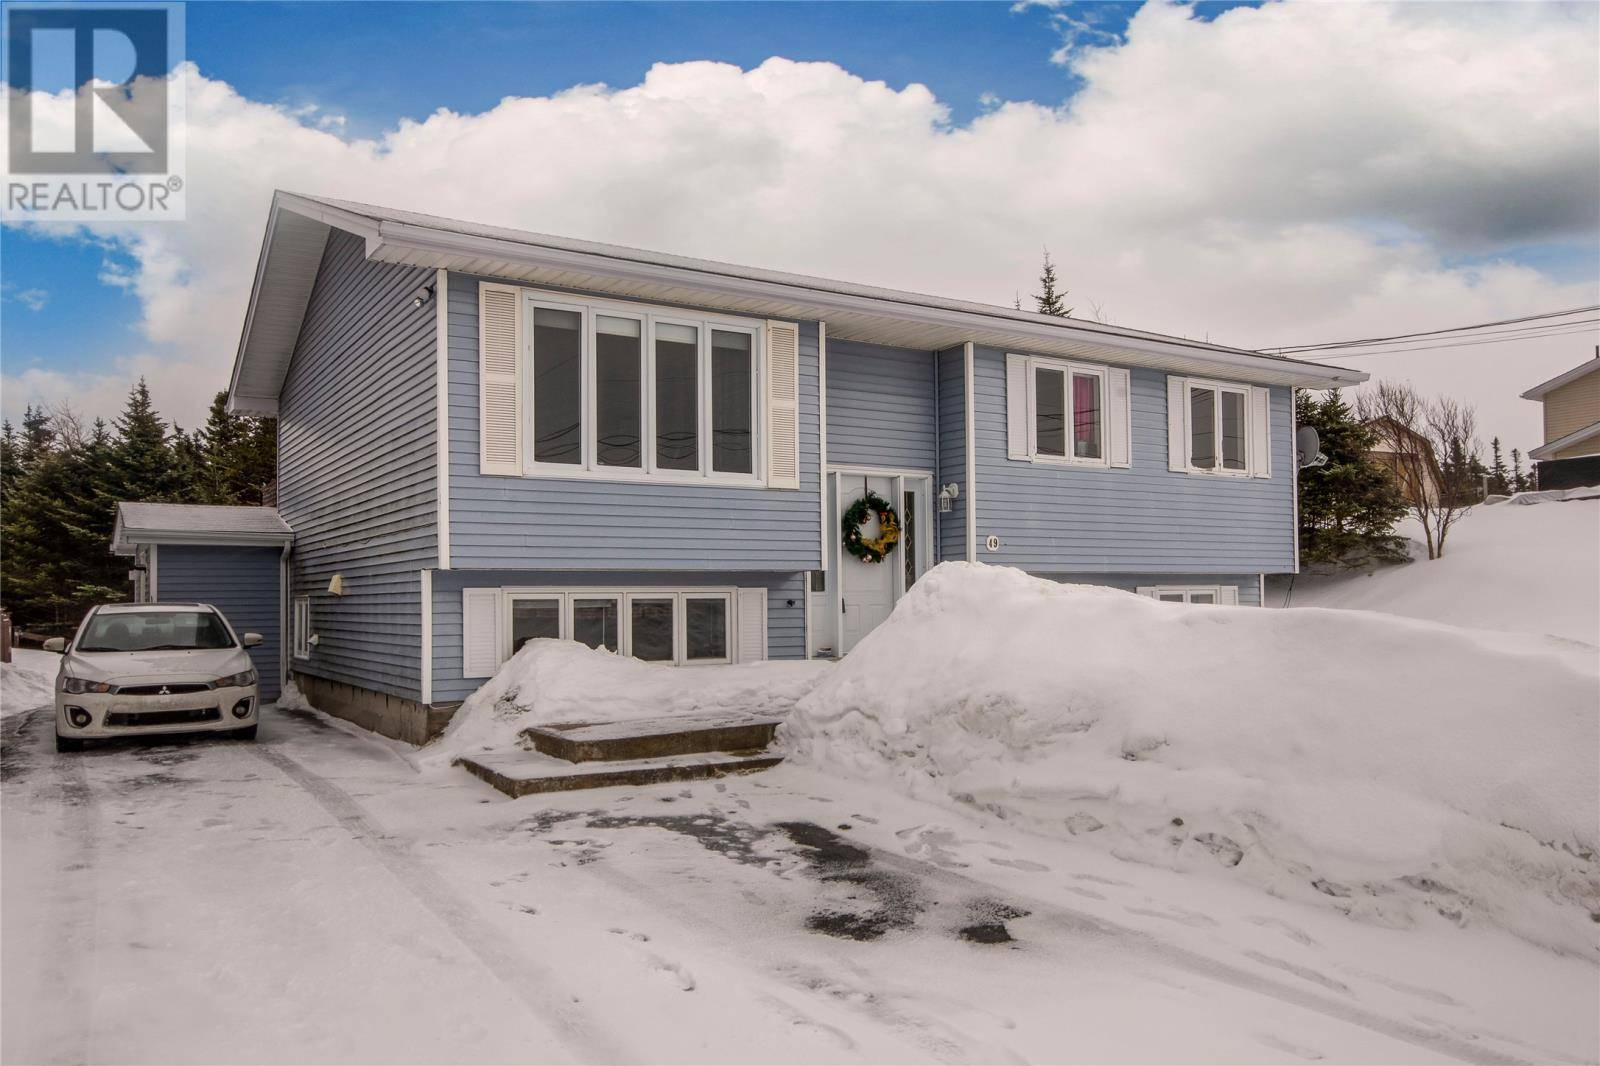 House for sale at 49 Jenny Lynn Dr Portugal Cove-st. Philips Newfoundland - MLS: 1210173